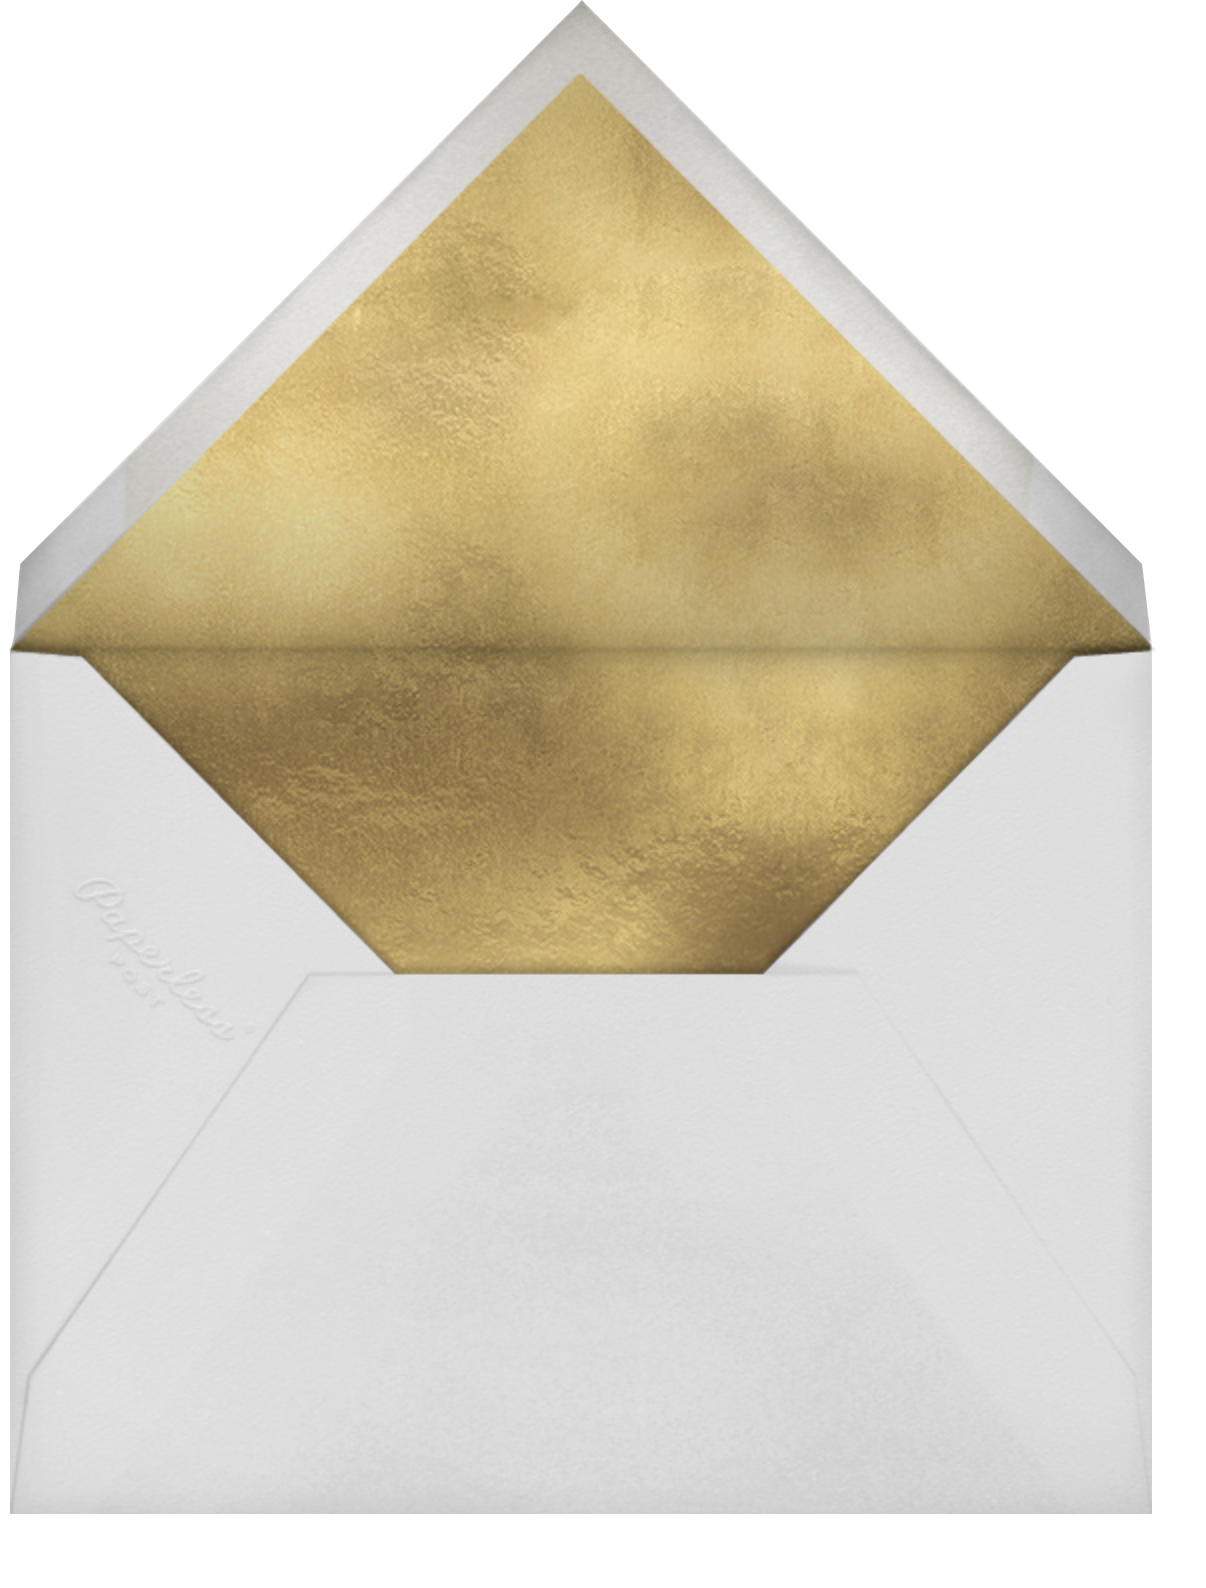 Gold Flakes - Mr. Boddington's Studio - Holiday cards - envelope back